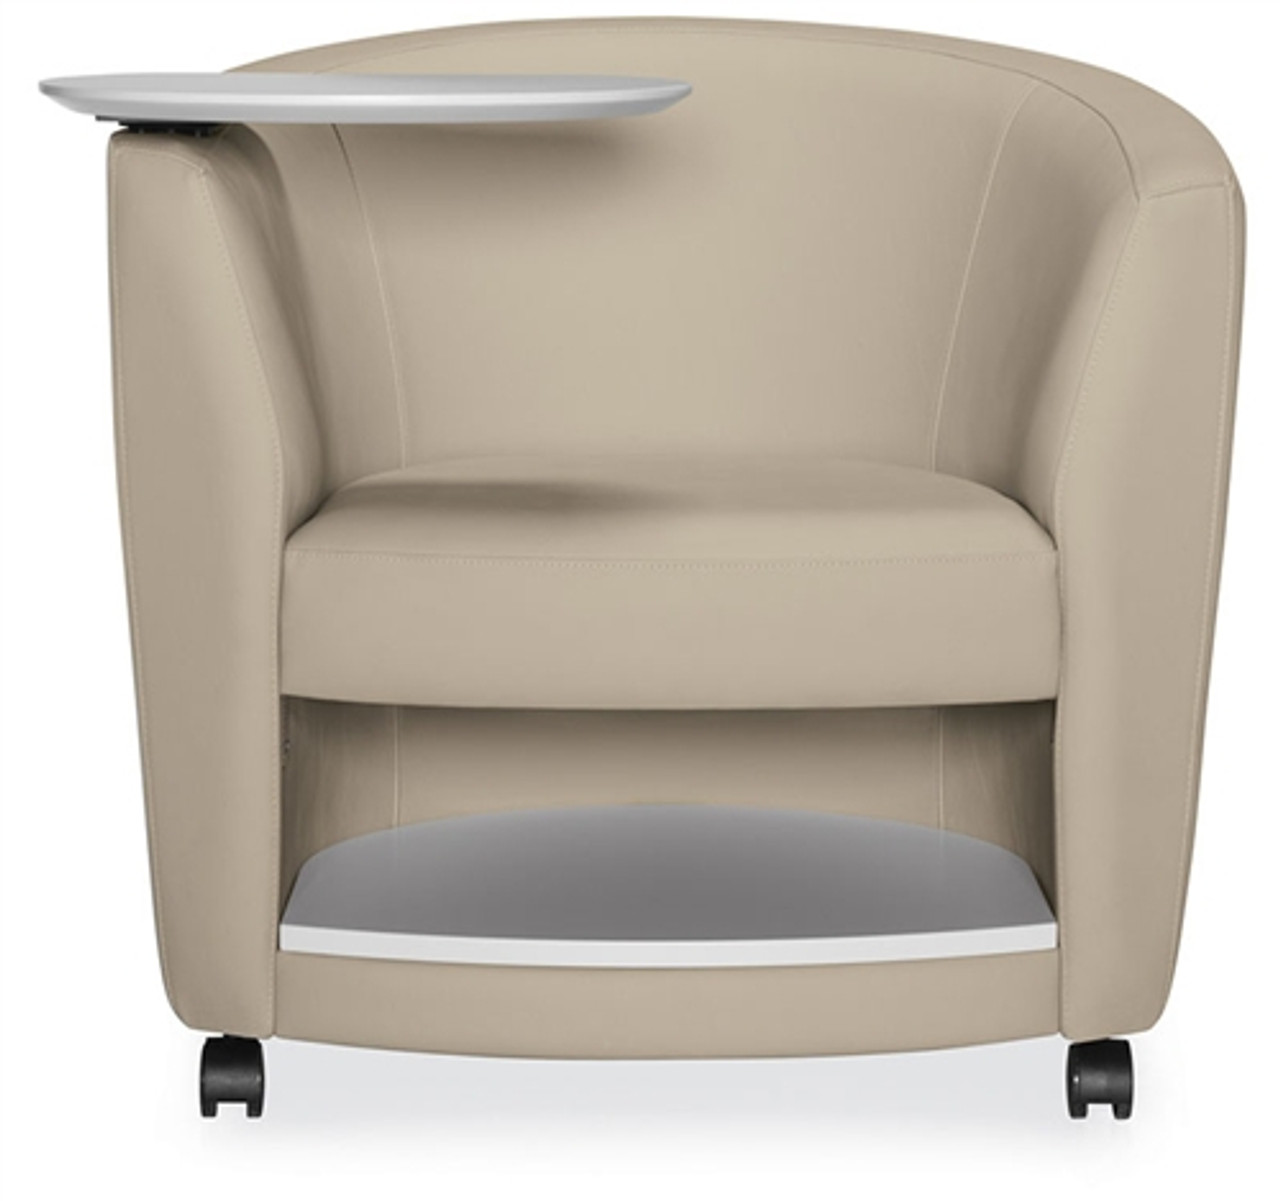 Surprising Global Sirena Mobile Lounge Chair With Tablet Arm And Bottom Shelf 3372Lcmltm Inzonedesignstudio Interior Chair Design Inzonedesignstudiocom